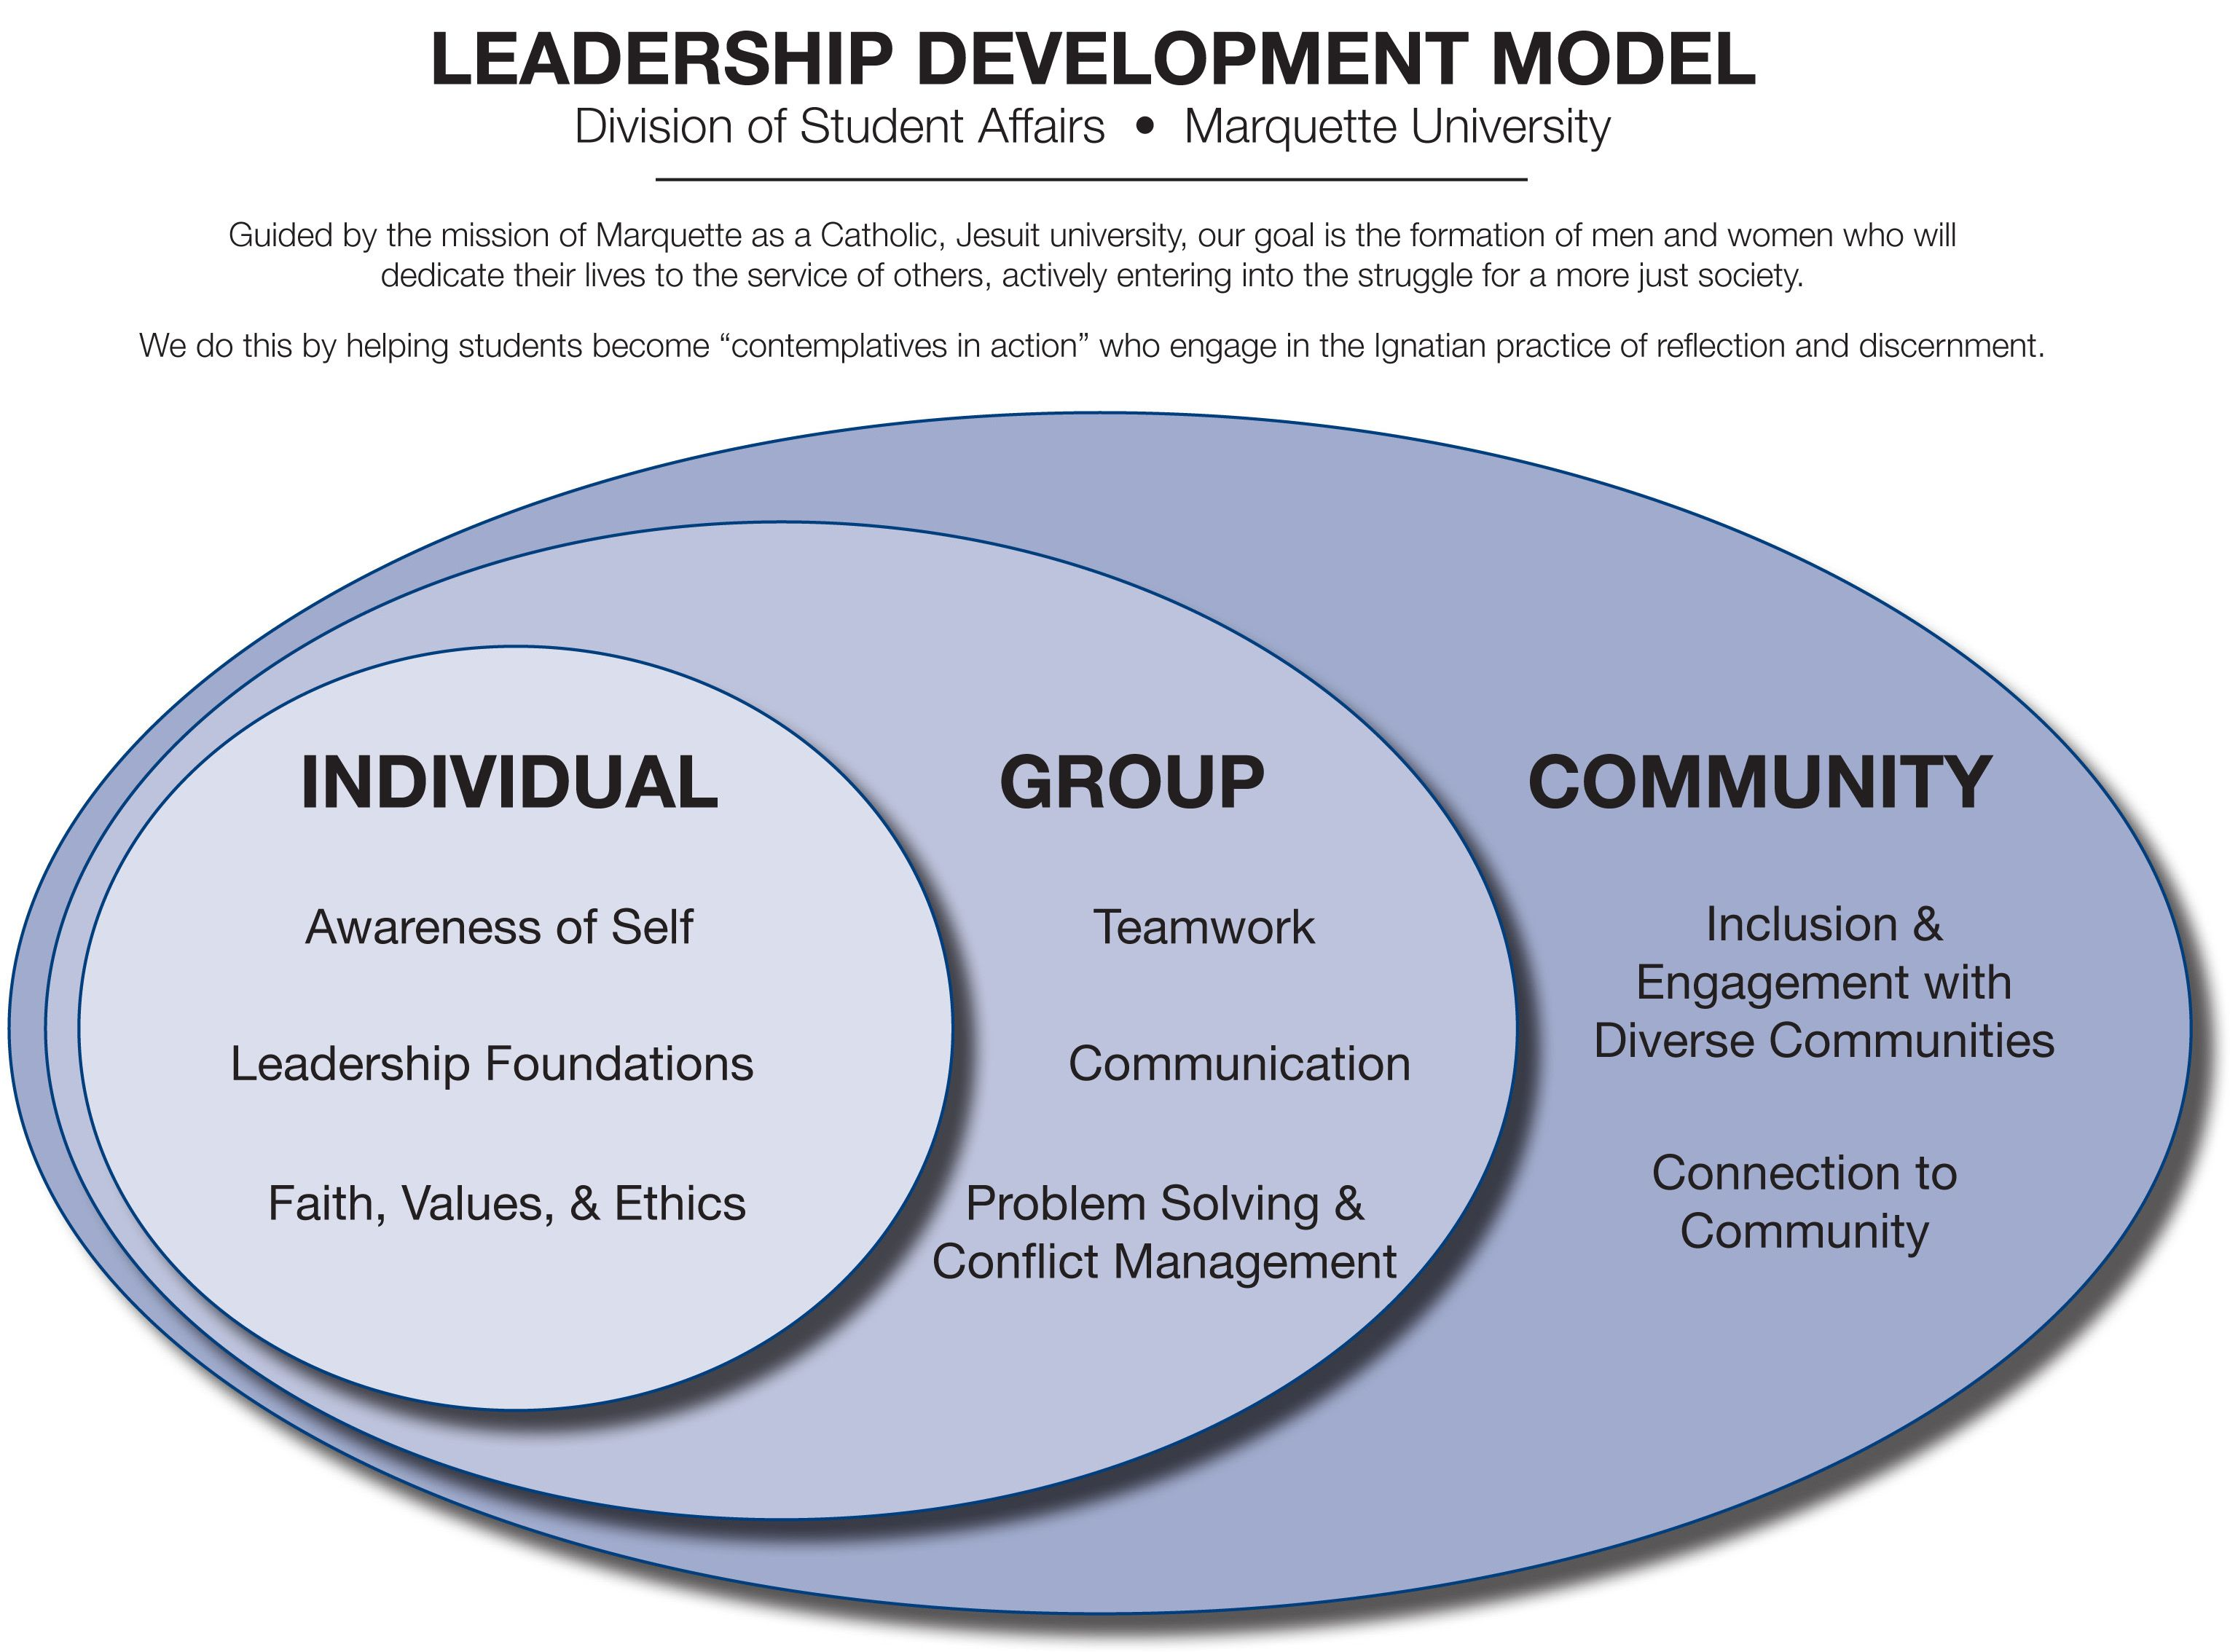 hill s model for team leadership 2014, hill consulting group leadership self assessment this self assessment is designed to help leaders determine which leadership skills they may need to develop.